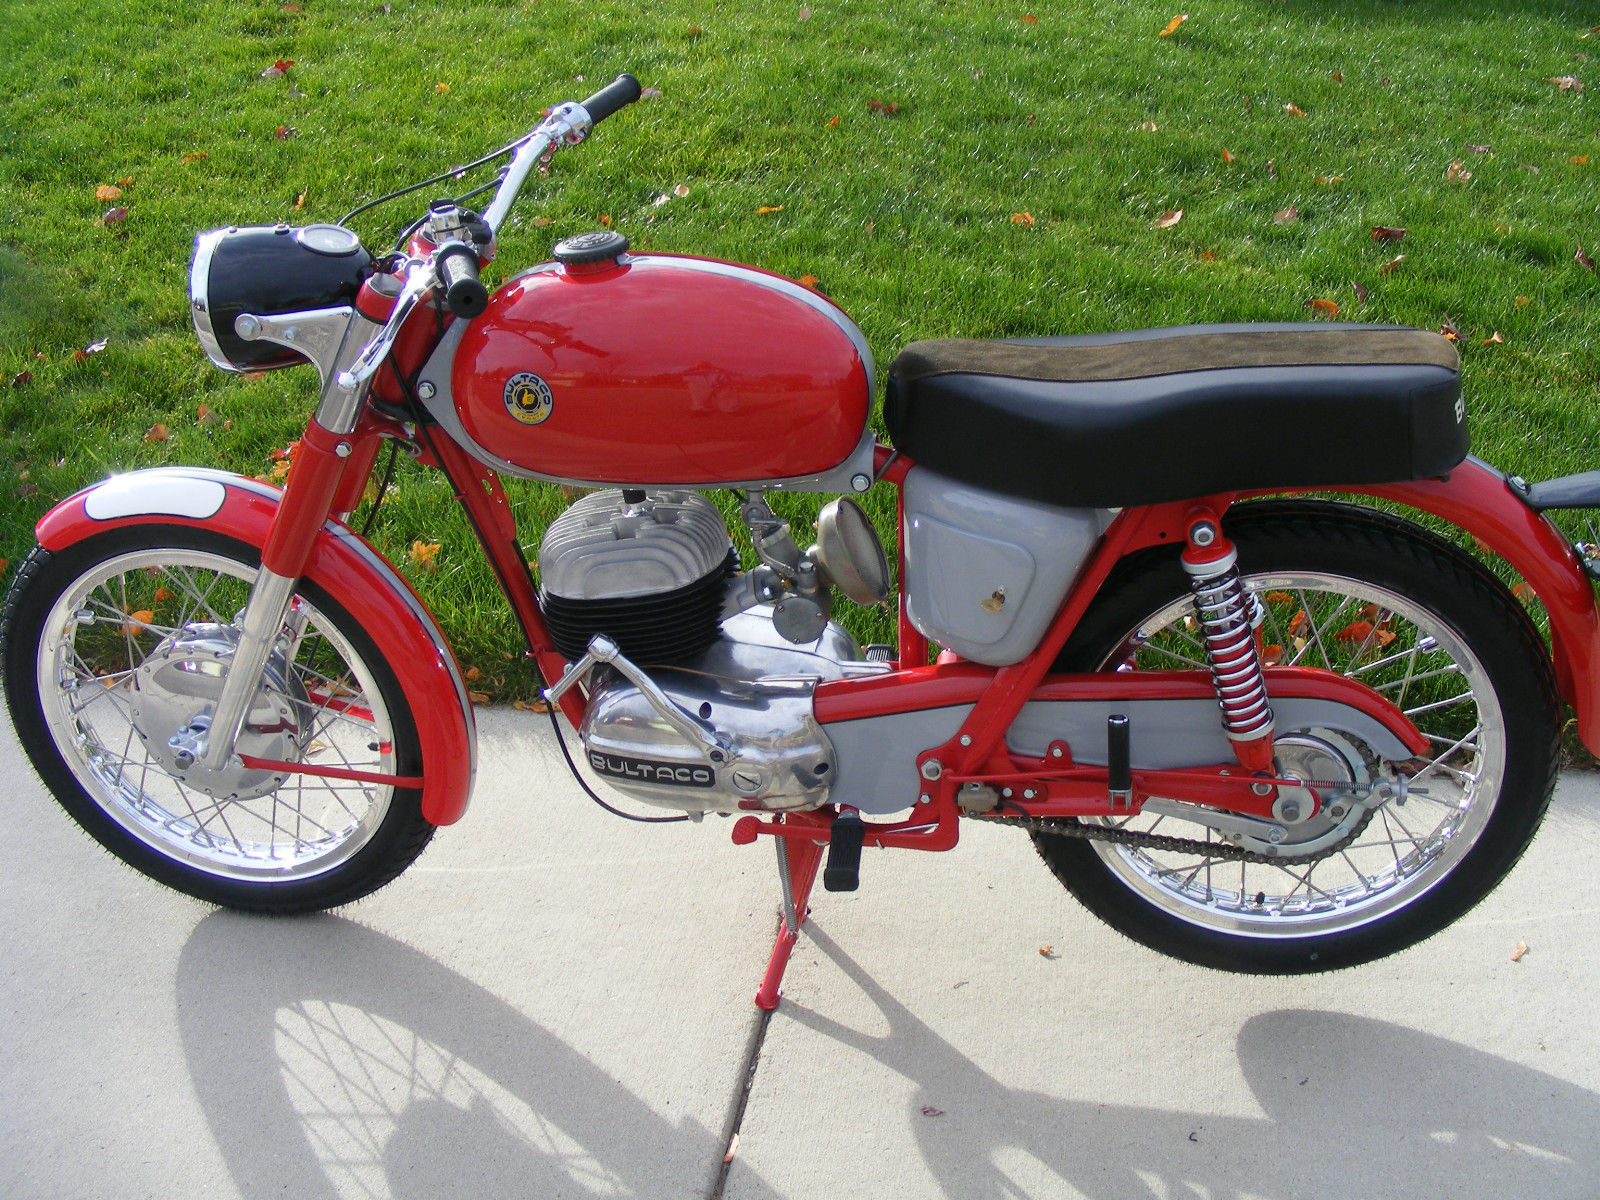 Bultaco Mercurio - 1966 - Frame and Forks.